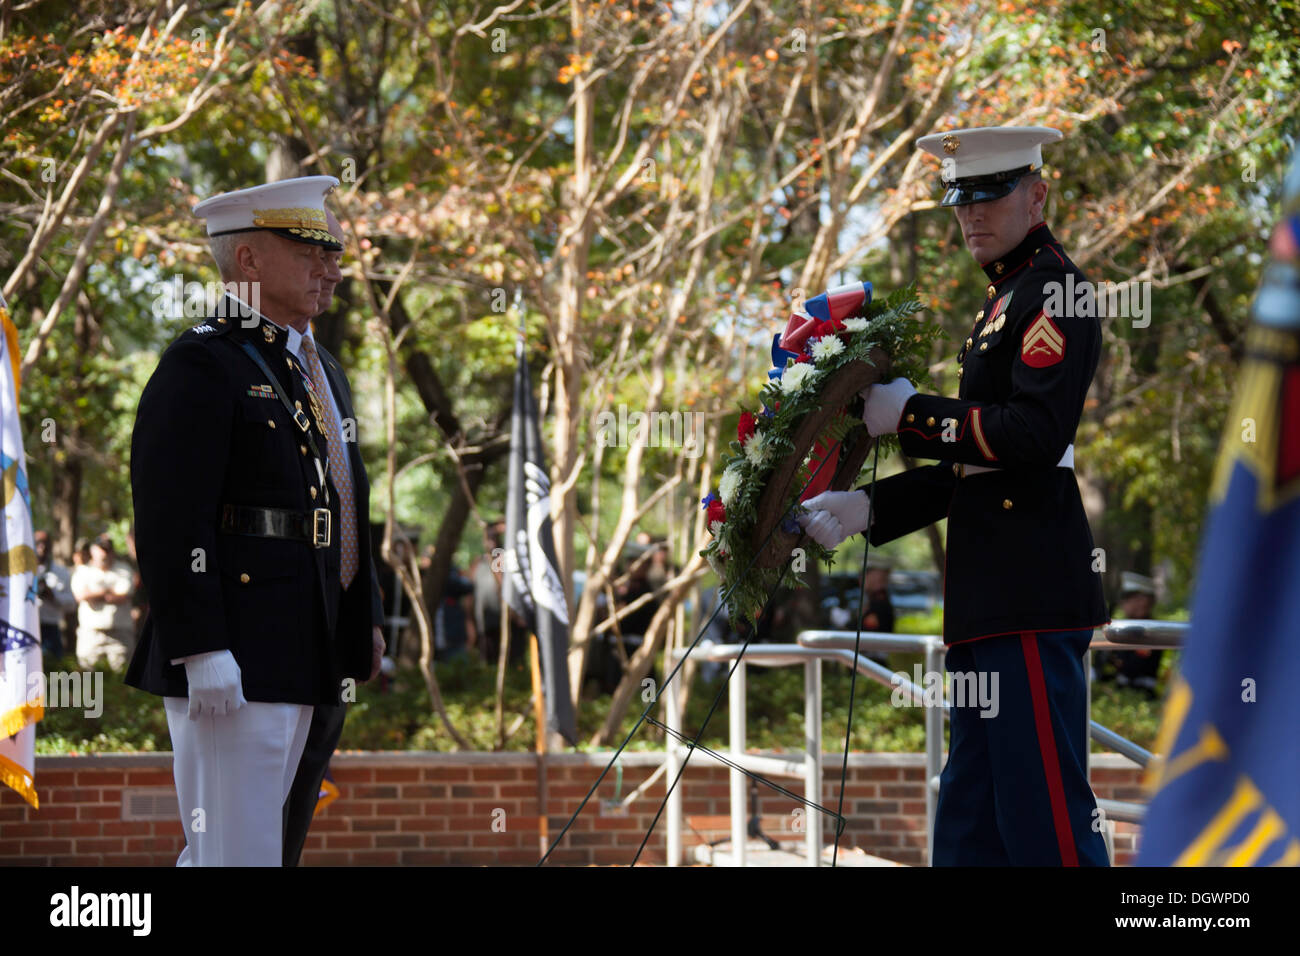 U.S. Marine Corps Gen. James F. Amos, left, 35th commandant of the Marine Corps, prepares to lay a wreath at the Stock Photo